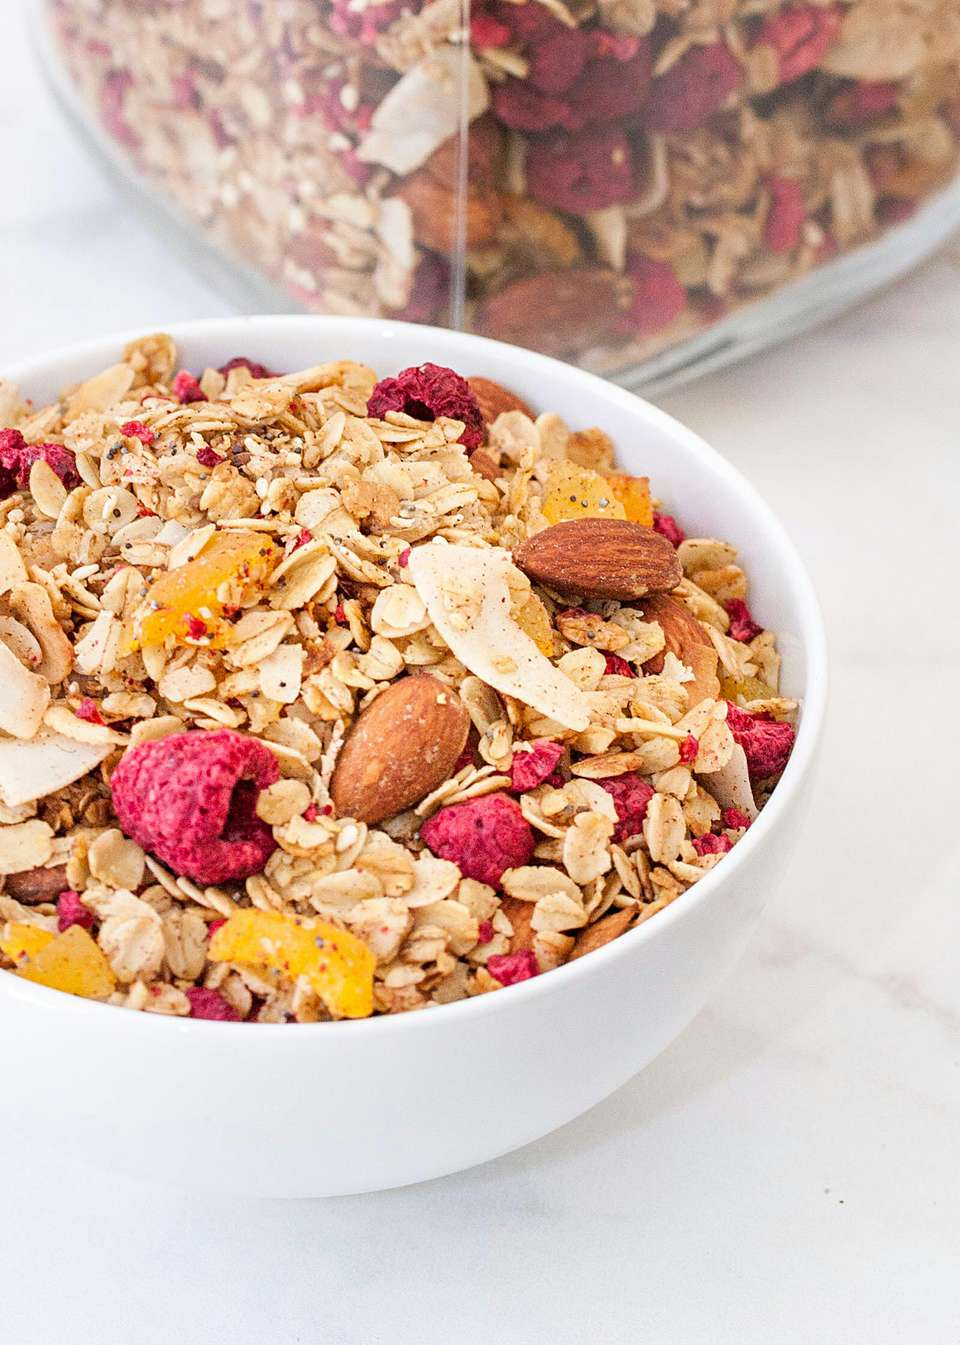 Homemade Granola in the Slow Cooker